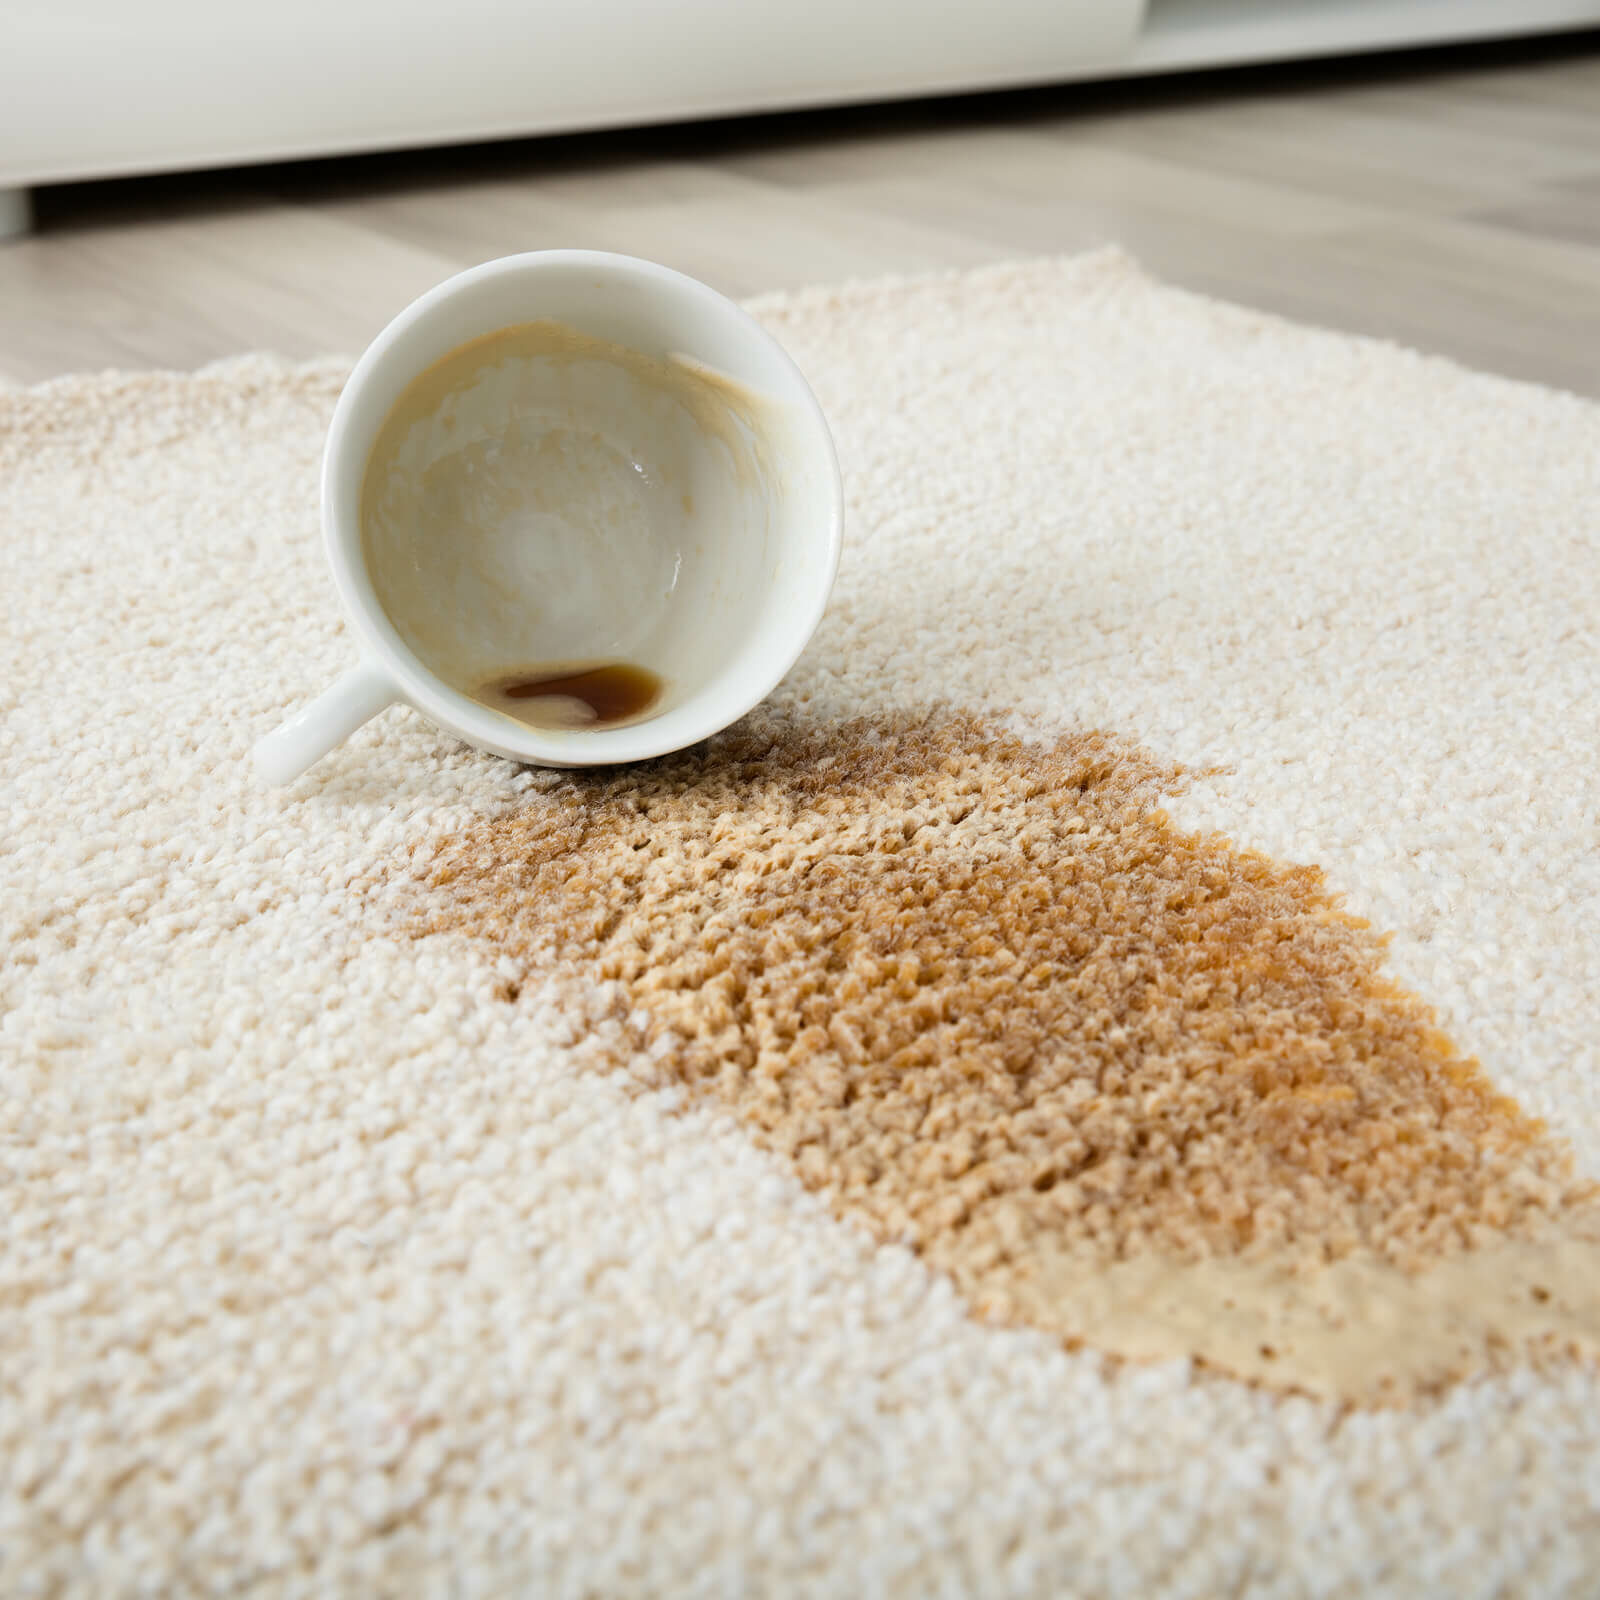 Area Rugs carpet cleaning   BMG Flooring & Tile Center